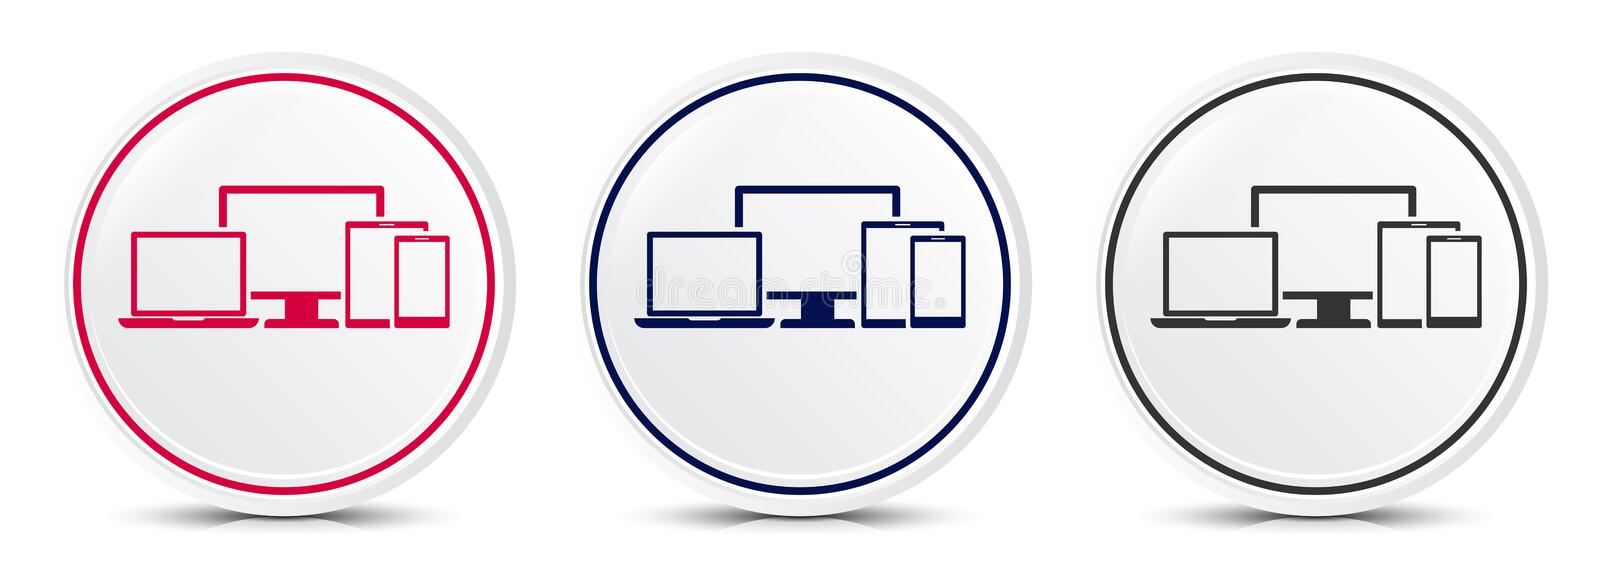 Digital smart devices icon crystal flat round button set illustration design. Isolated on white background vector illustration